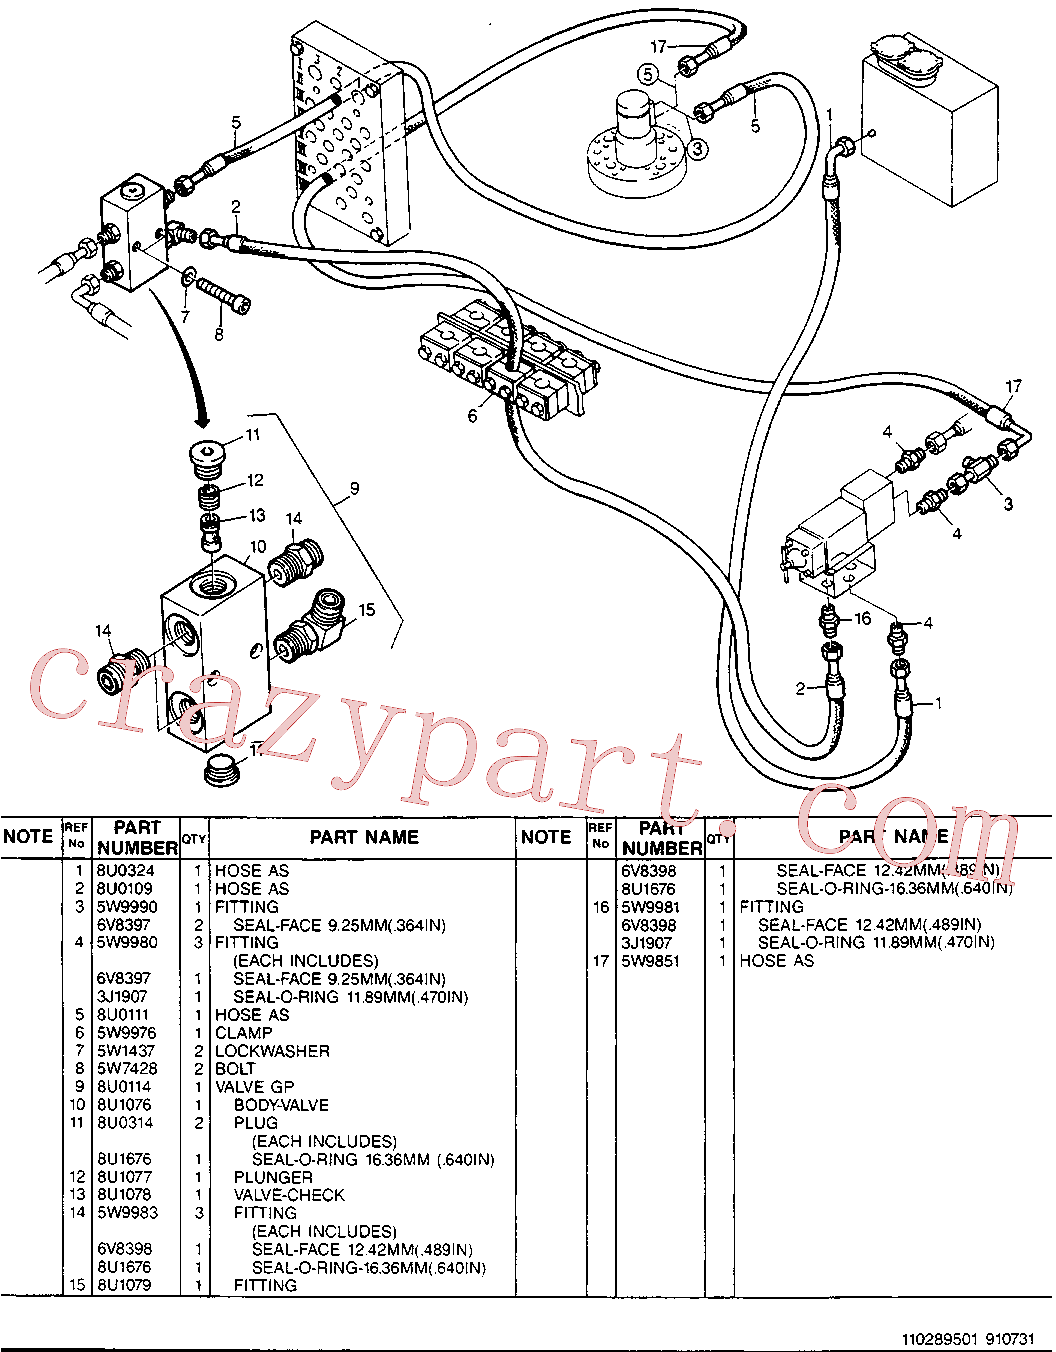 CAT 5W-4303 for 213B Excavator(EXC) hydraulic system 8U-4338 Assembly